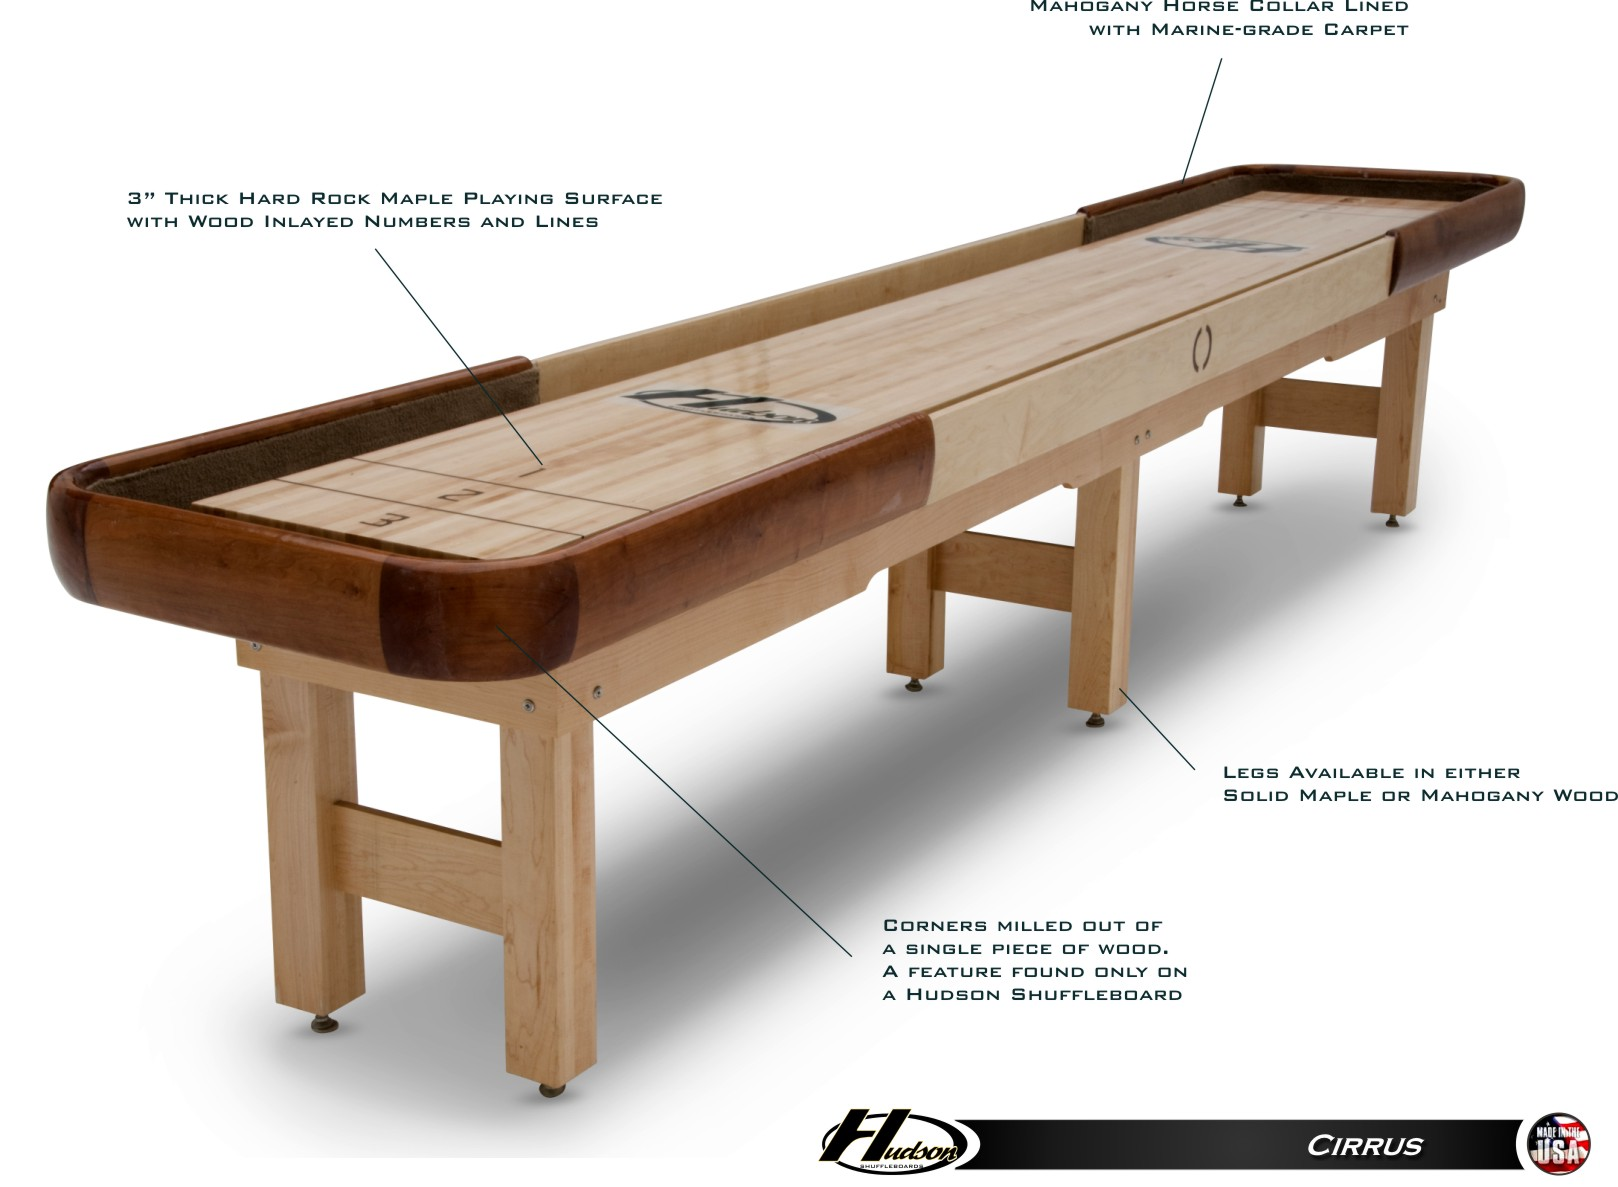 18 Cirrus Outdoor Shuffleboard Table View Detailed Images 14